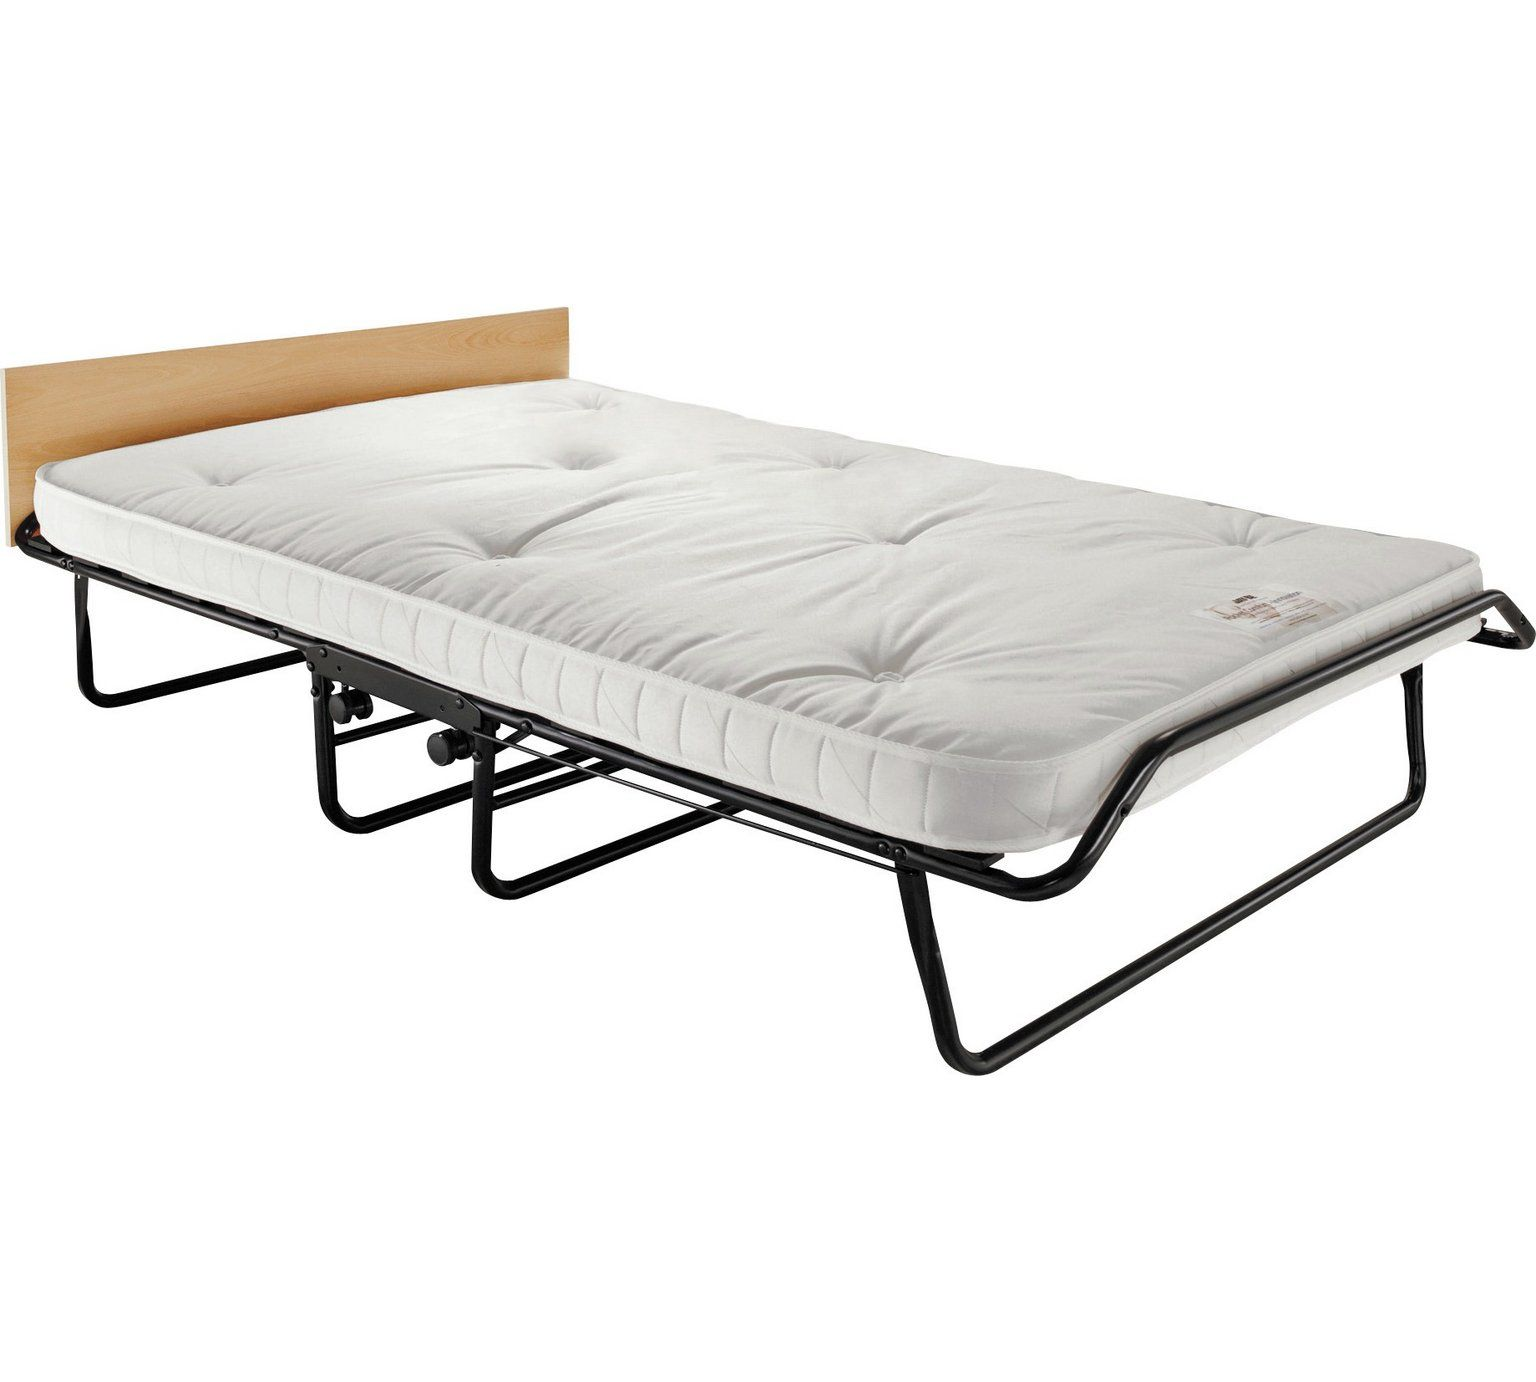 - Buy JAY-BE Folding Guest Bed - Small Double Guest Beds Folding